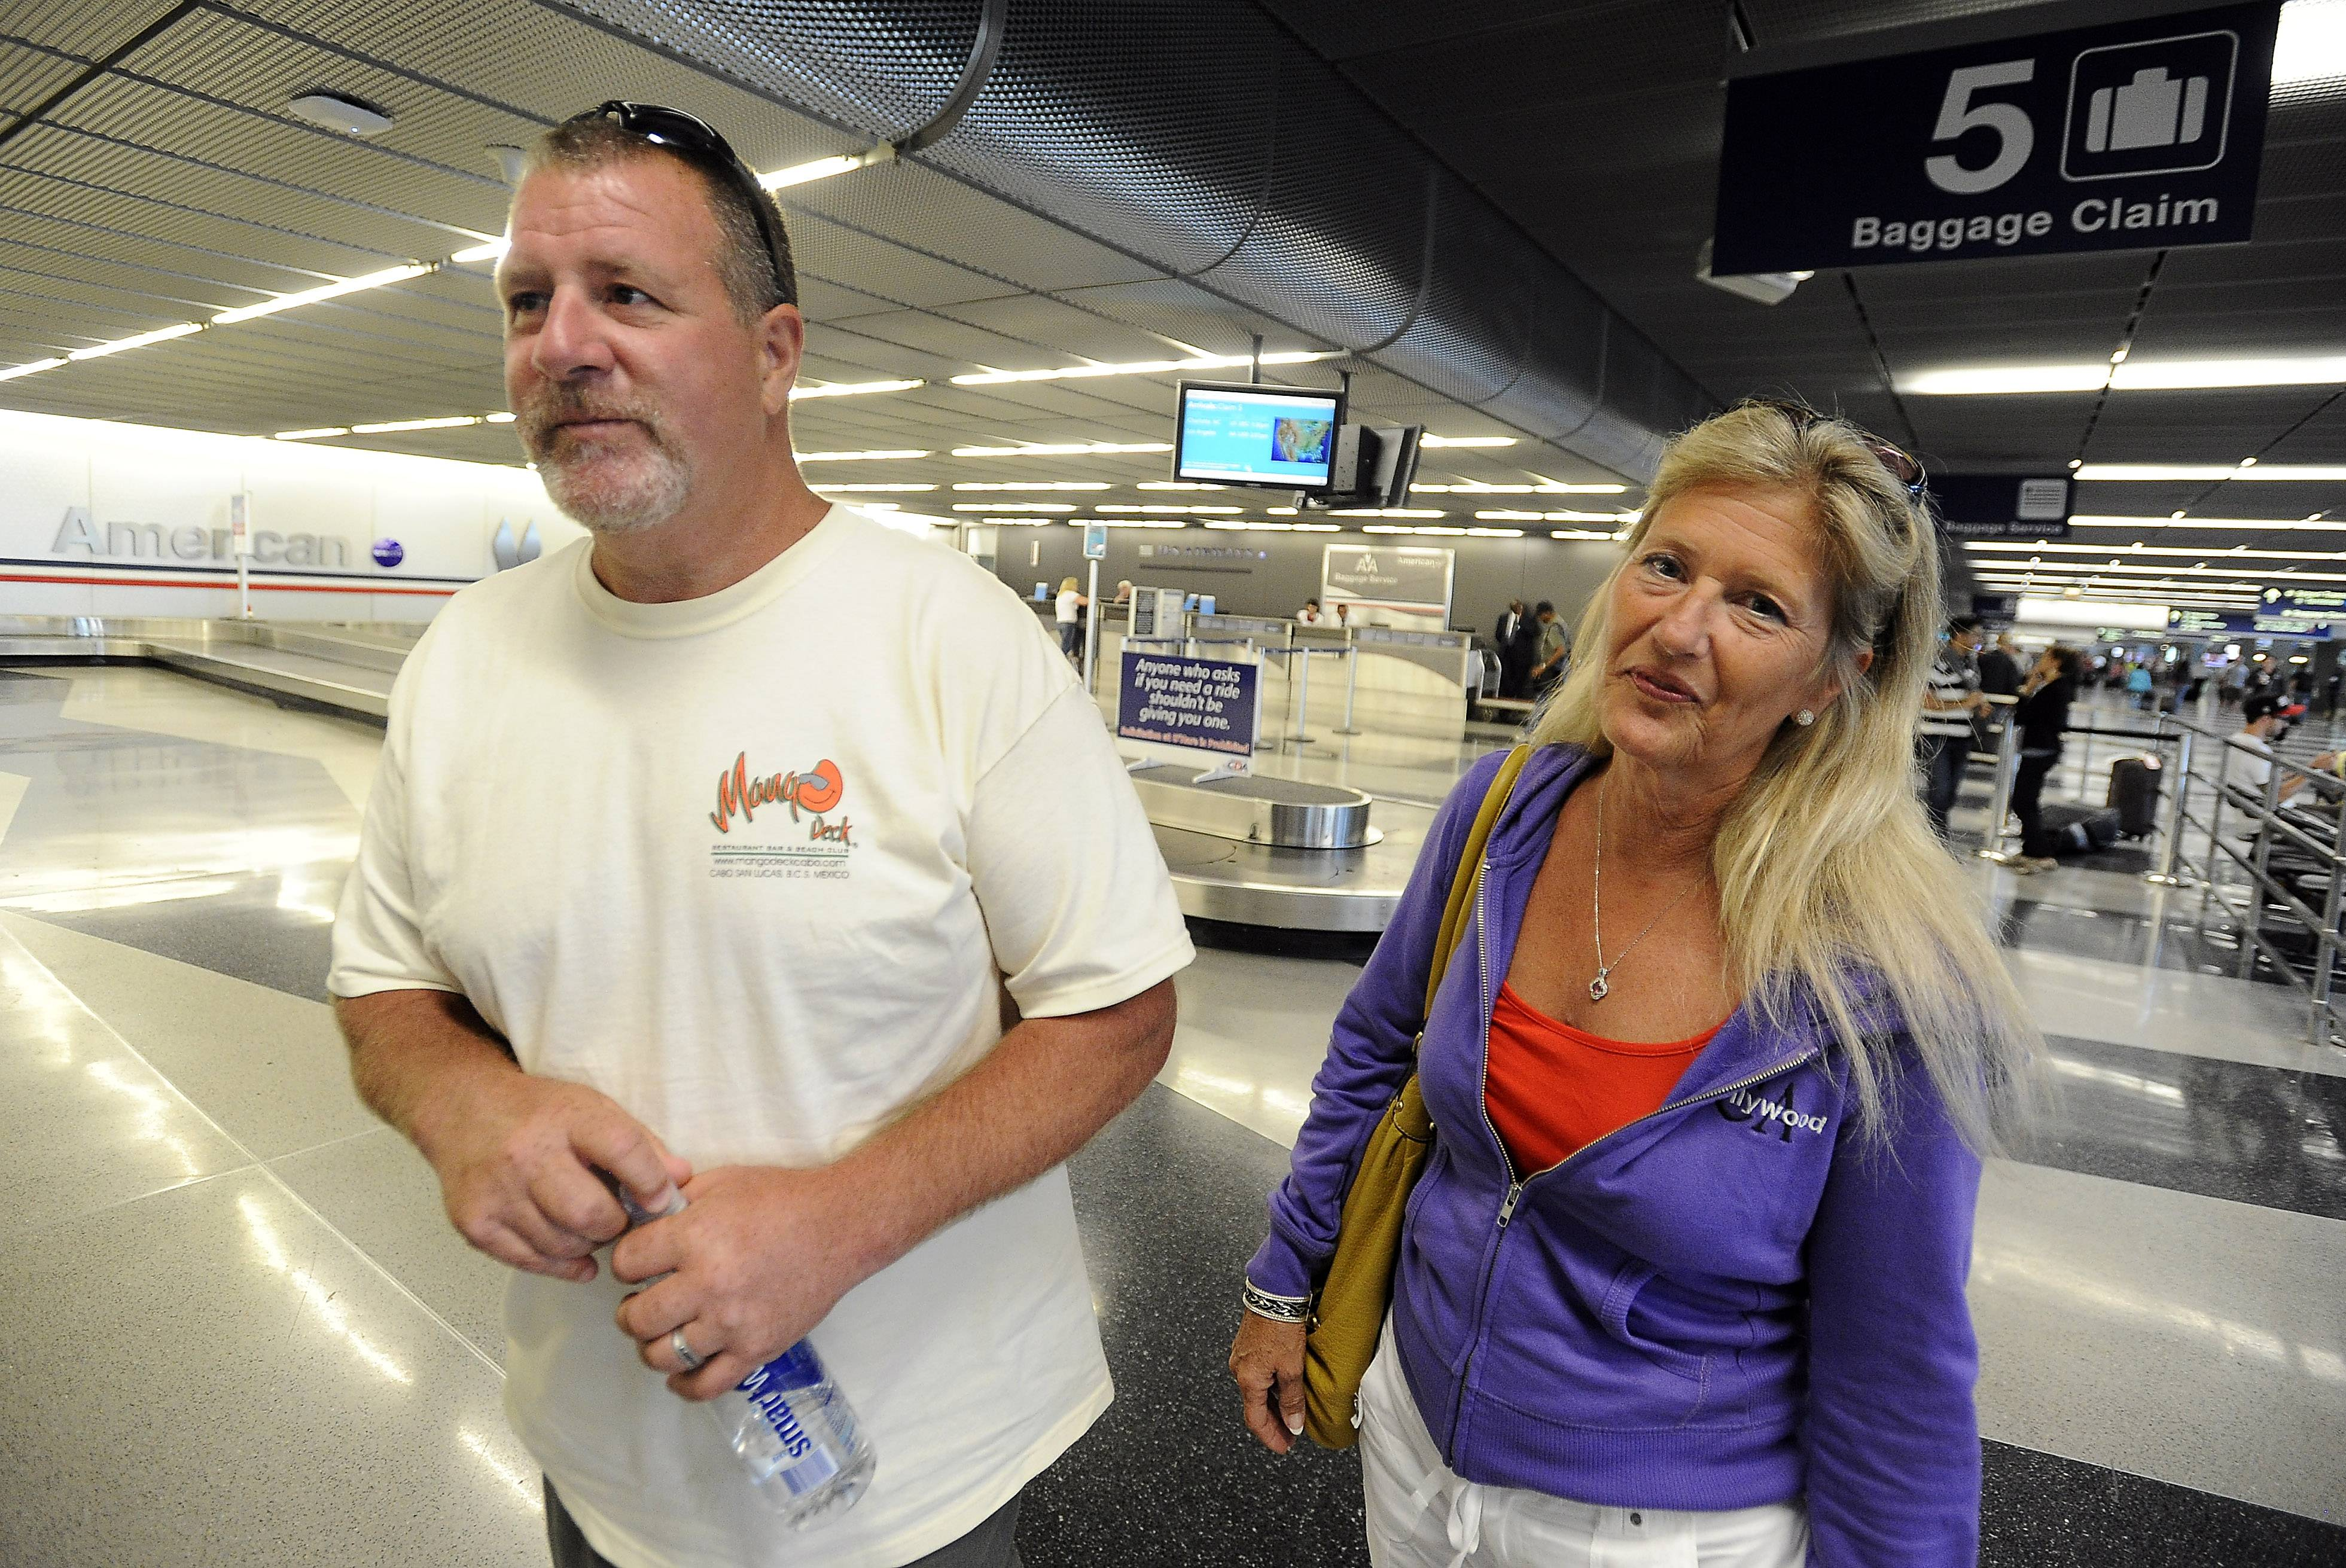 Hoffman Estates Fire Lt. Tom Mangiameli and his wife, Kathy, arrived Friday afternoon at O'Hare International Airport after being stuck in Los Cabos, Mexico, with several other firefighters who were there to attend the couple's wedding.